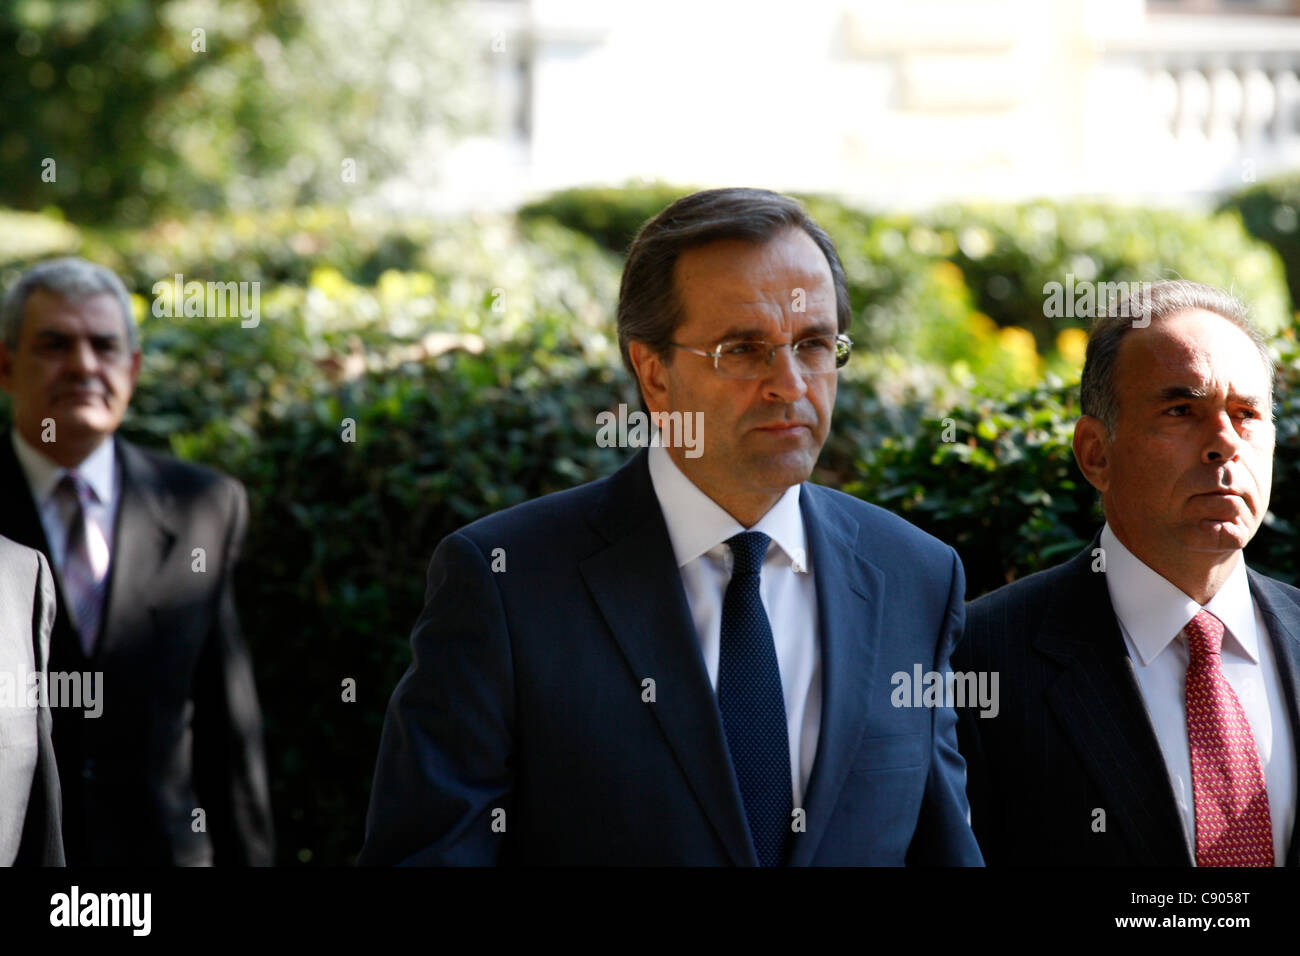 6 November 2011 Athens Greece. Conservative opposition leader Antonis Samaras(M) exists Presidential house after - Stock Image